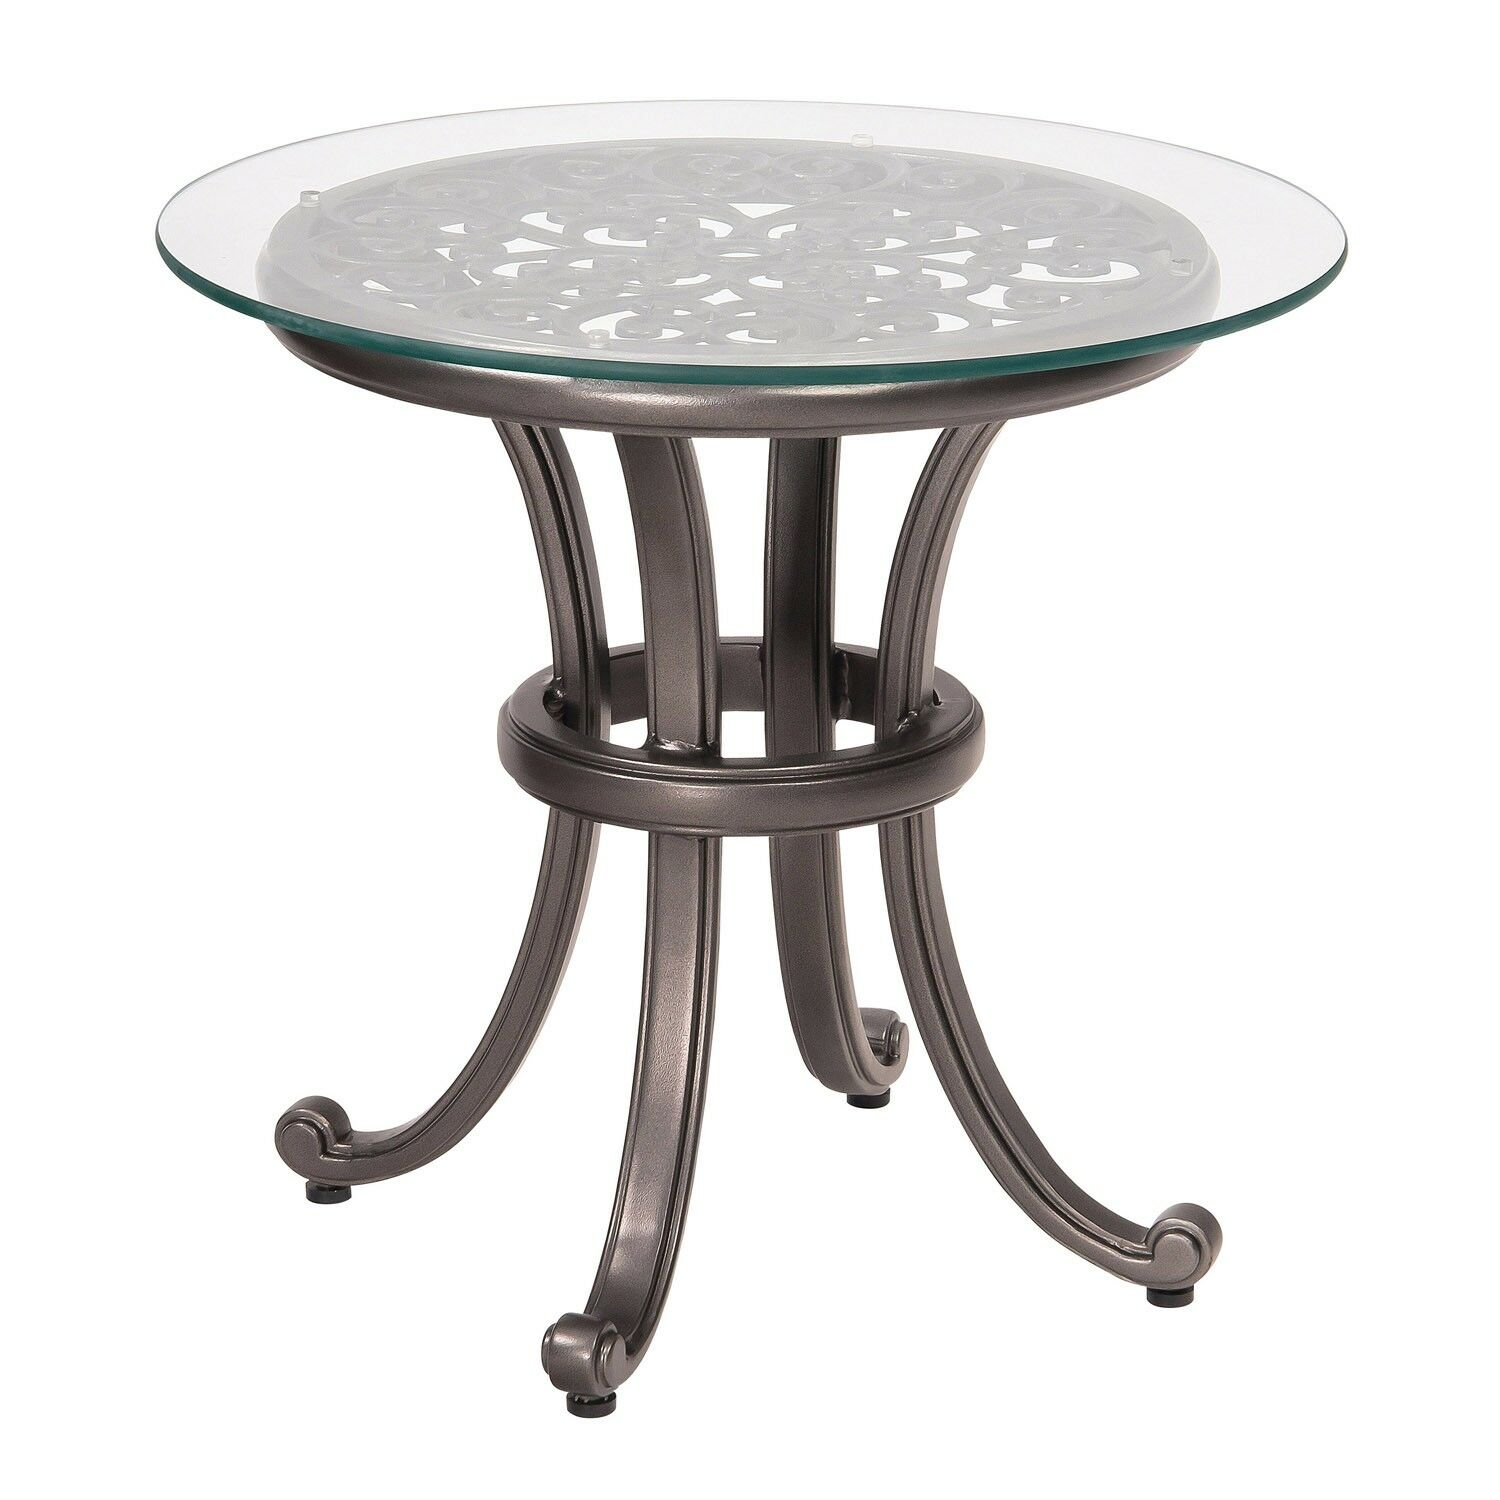 New Orleans Side Table with Glass Top (Set of 2) Frame Color: Chestnut Brown